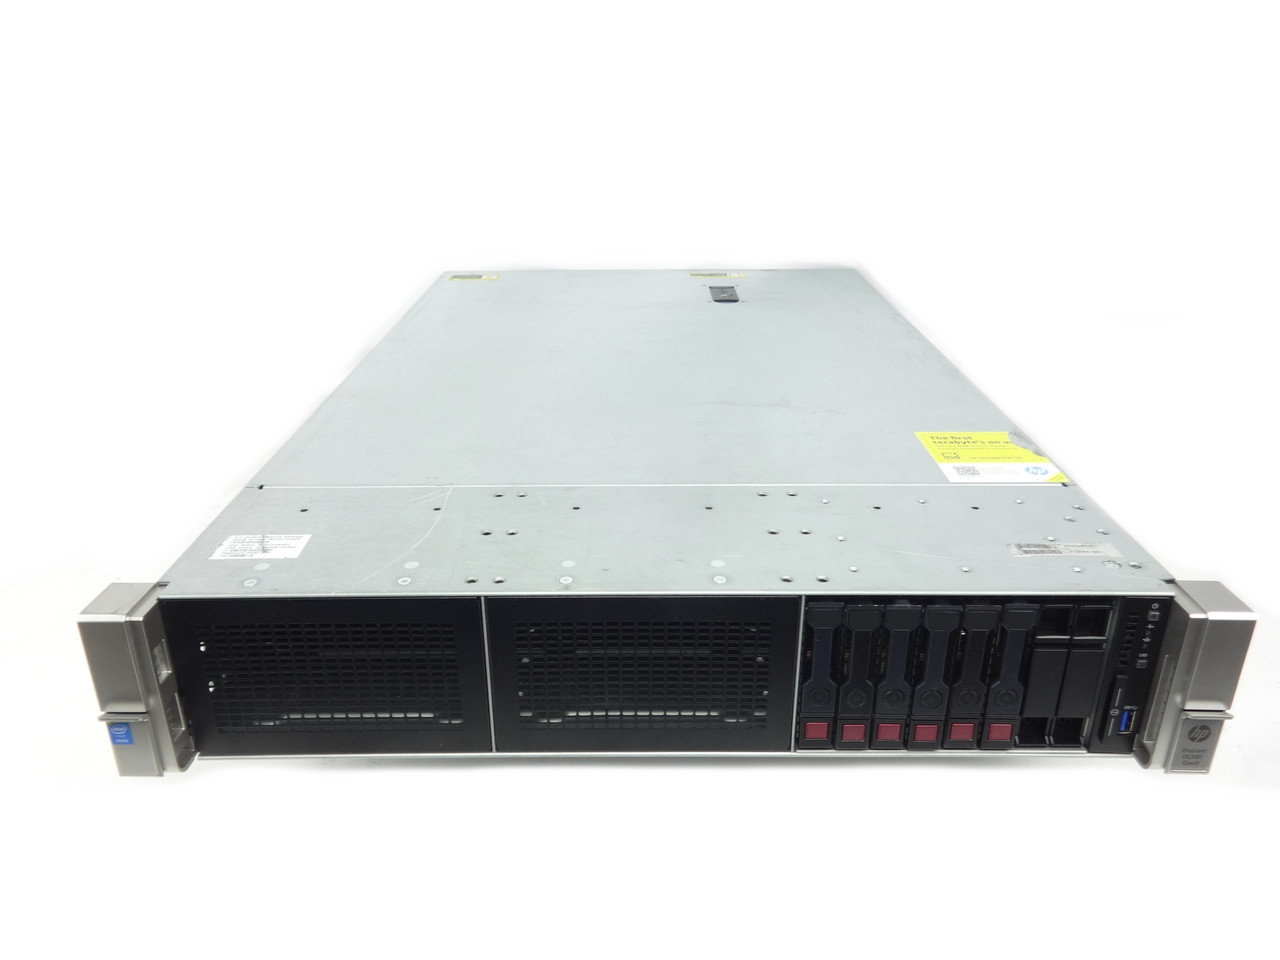 "HPE Proliant DL380 G9 8x 2.5"" Server Build to Order"